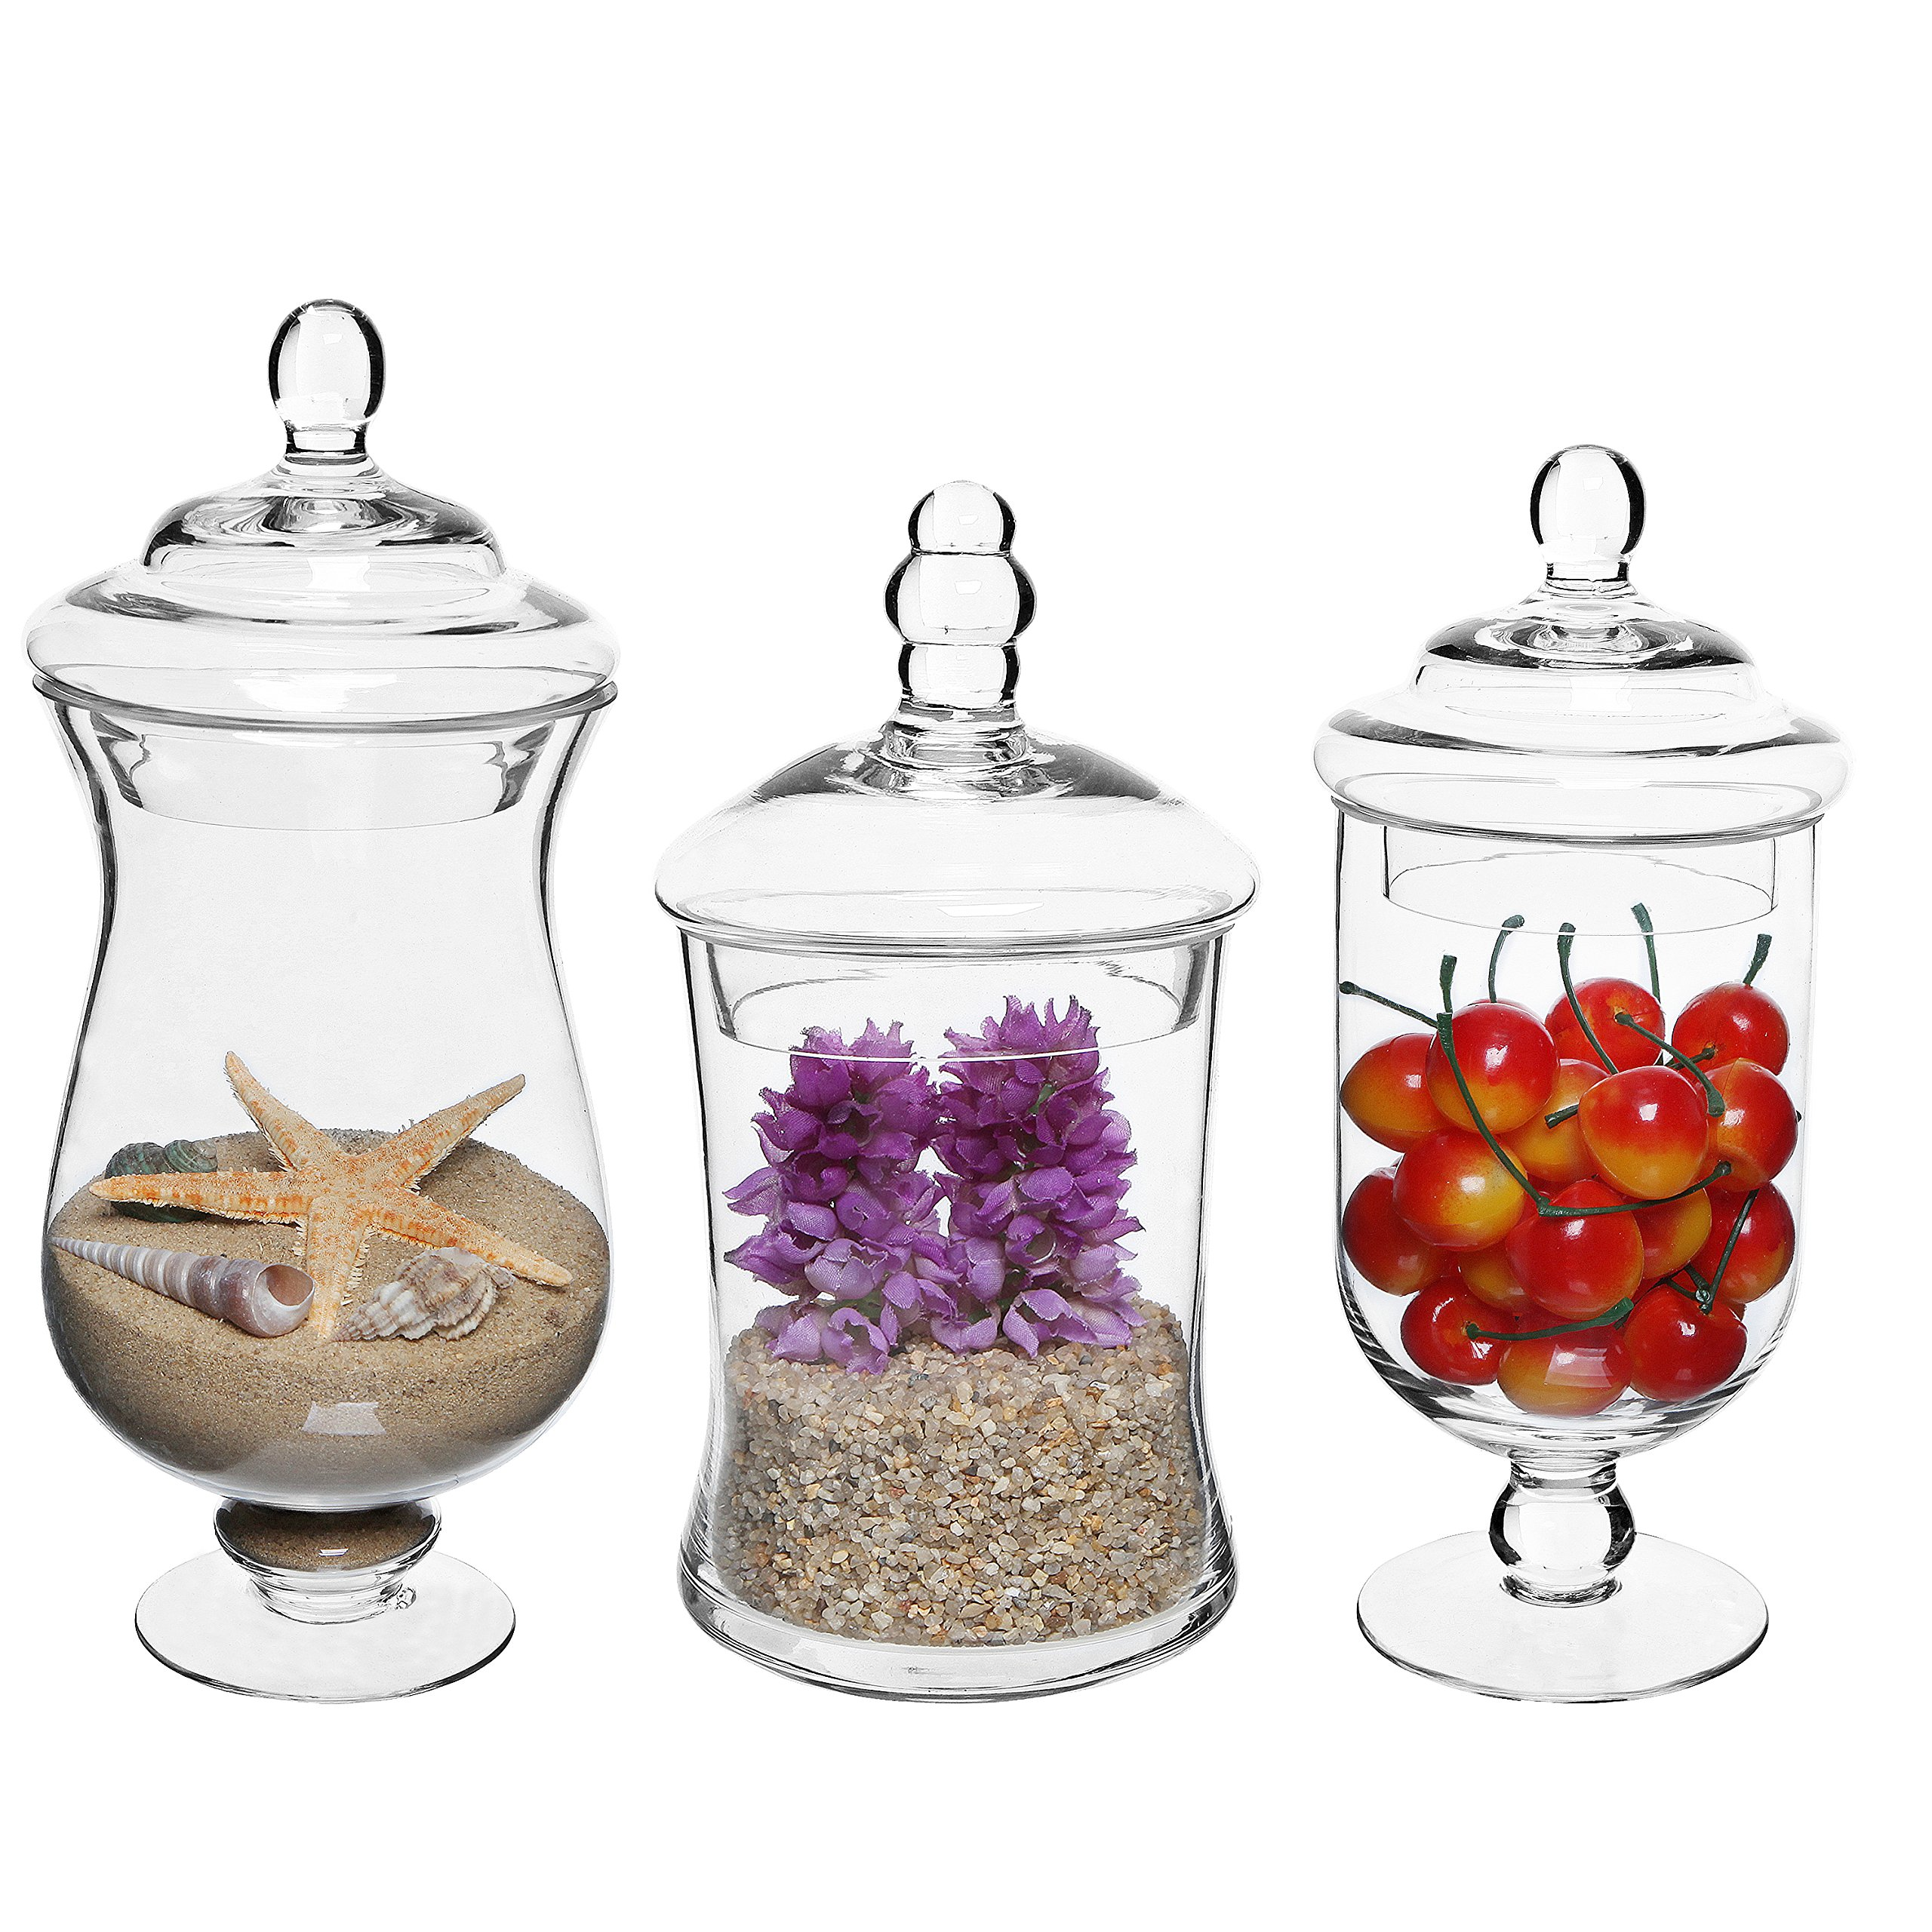 MyGift Set of 3 Small Clear Glass Storage & Display Canisters/Wedding Buffet & Apothecary Jars by MyGift